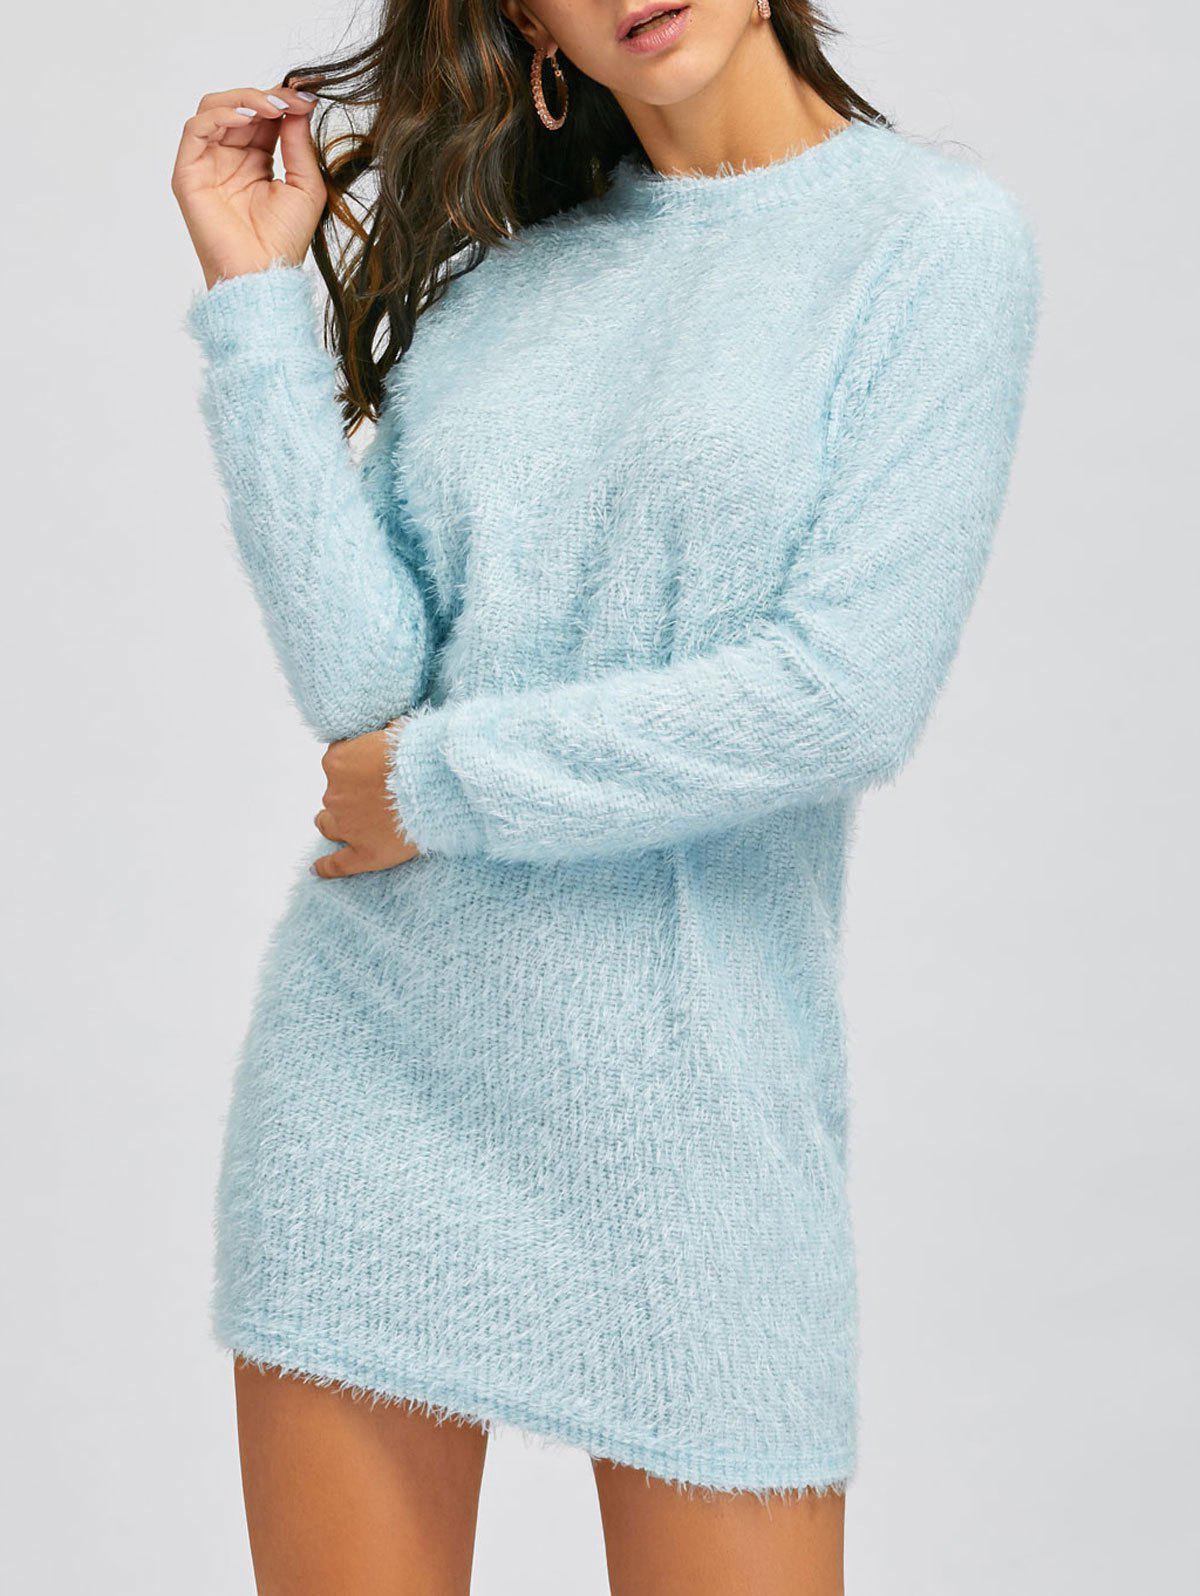 Short Fuzzy Sweater Dress - CLOUDY XL